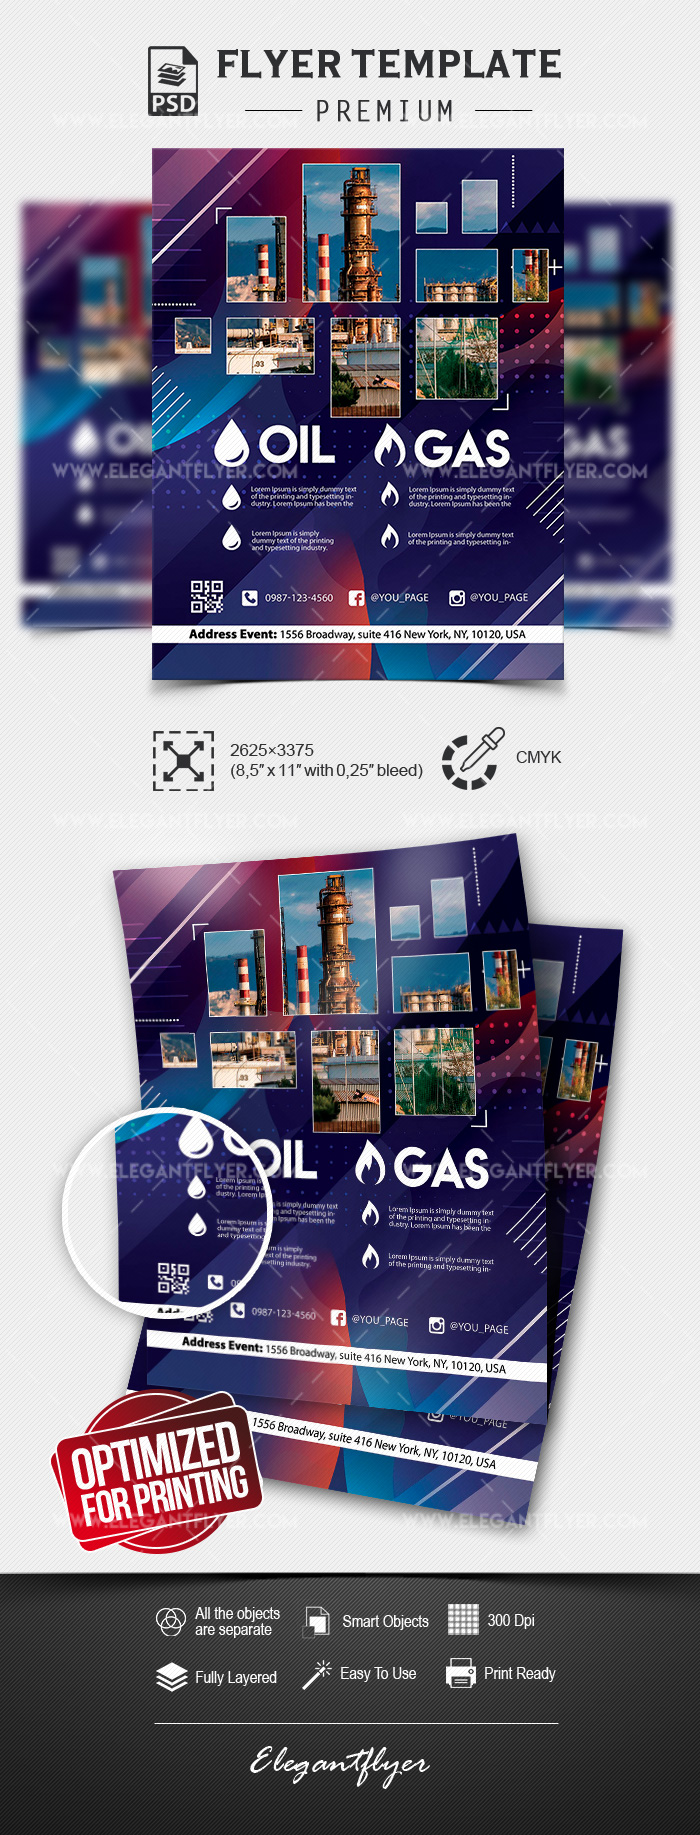 Oil & Gas Company – Premium Flyer Template in PSD